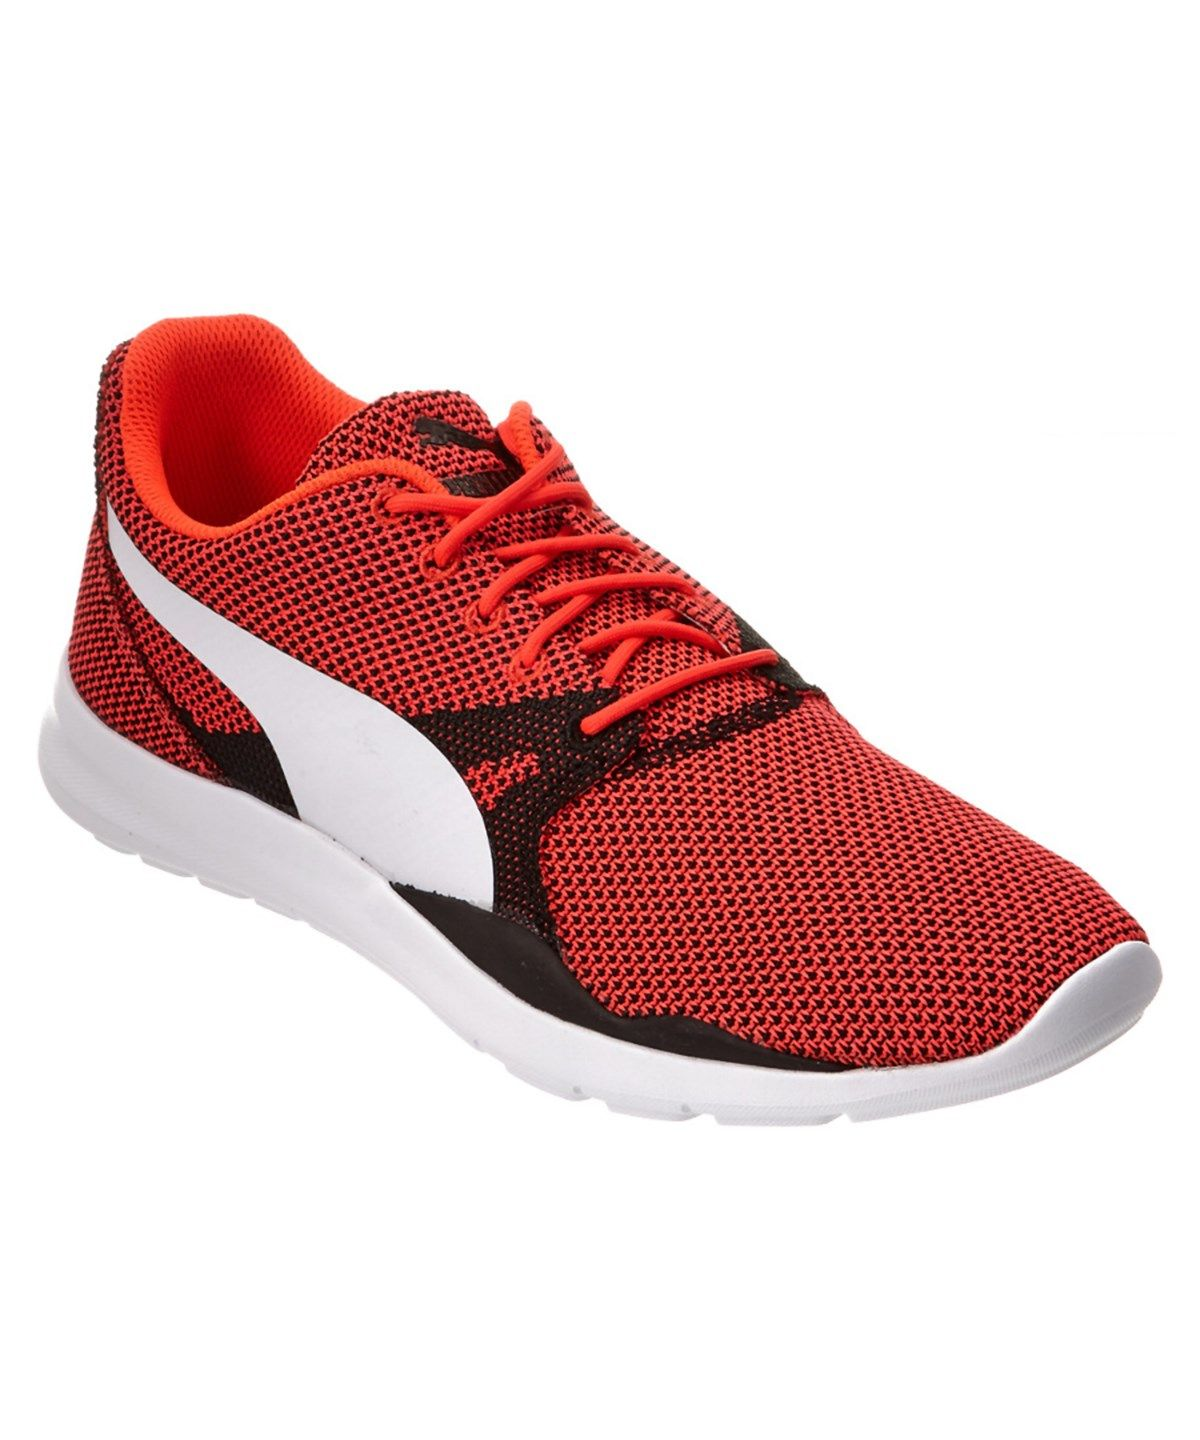 PUMA PUMA MEN'S DUPLEX EVO KNIT RUNNING SHOE'. #puma #shoes